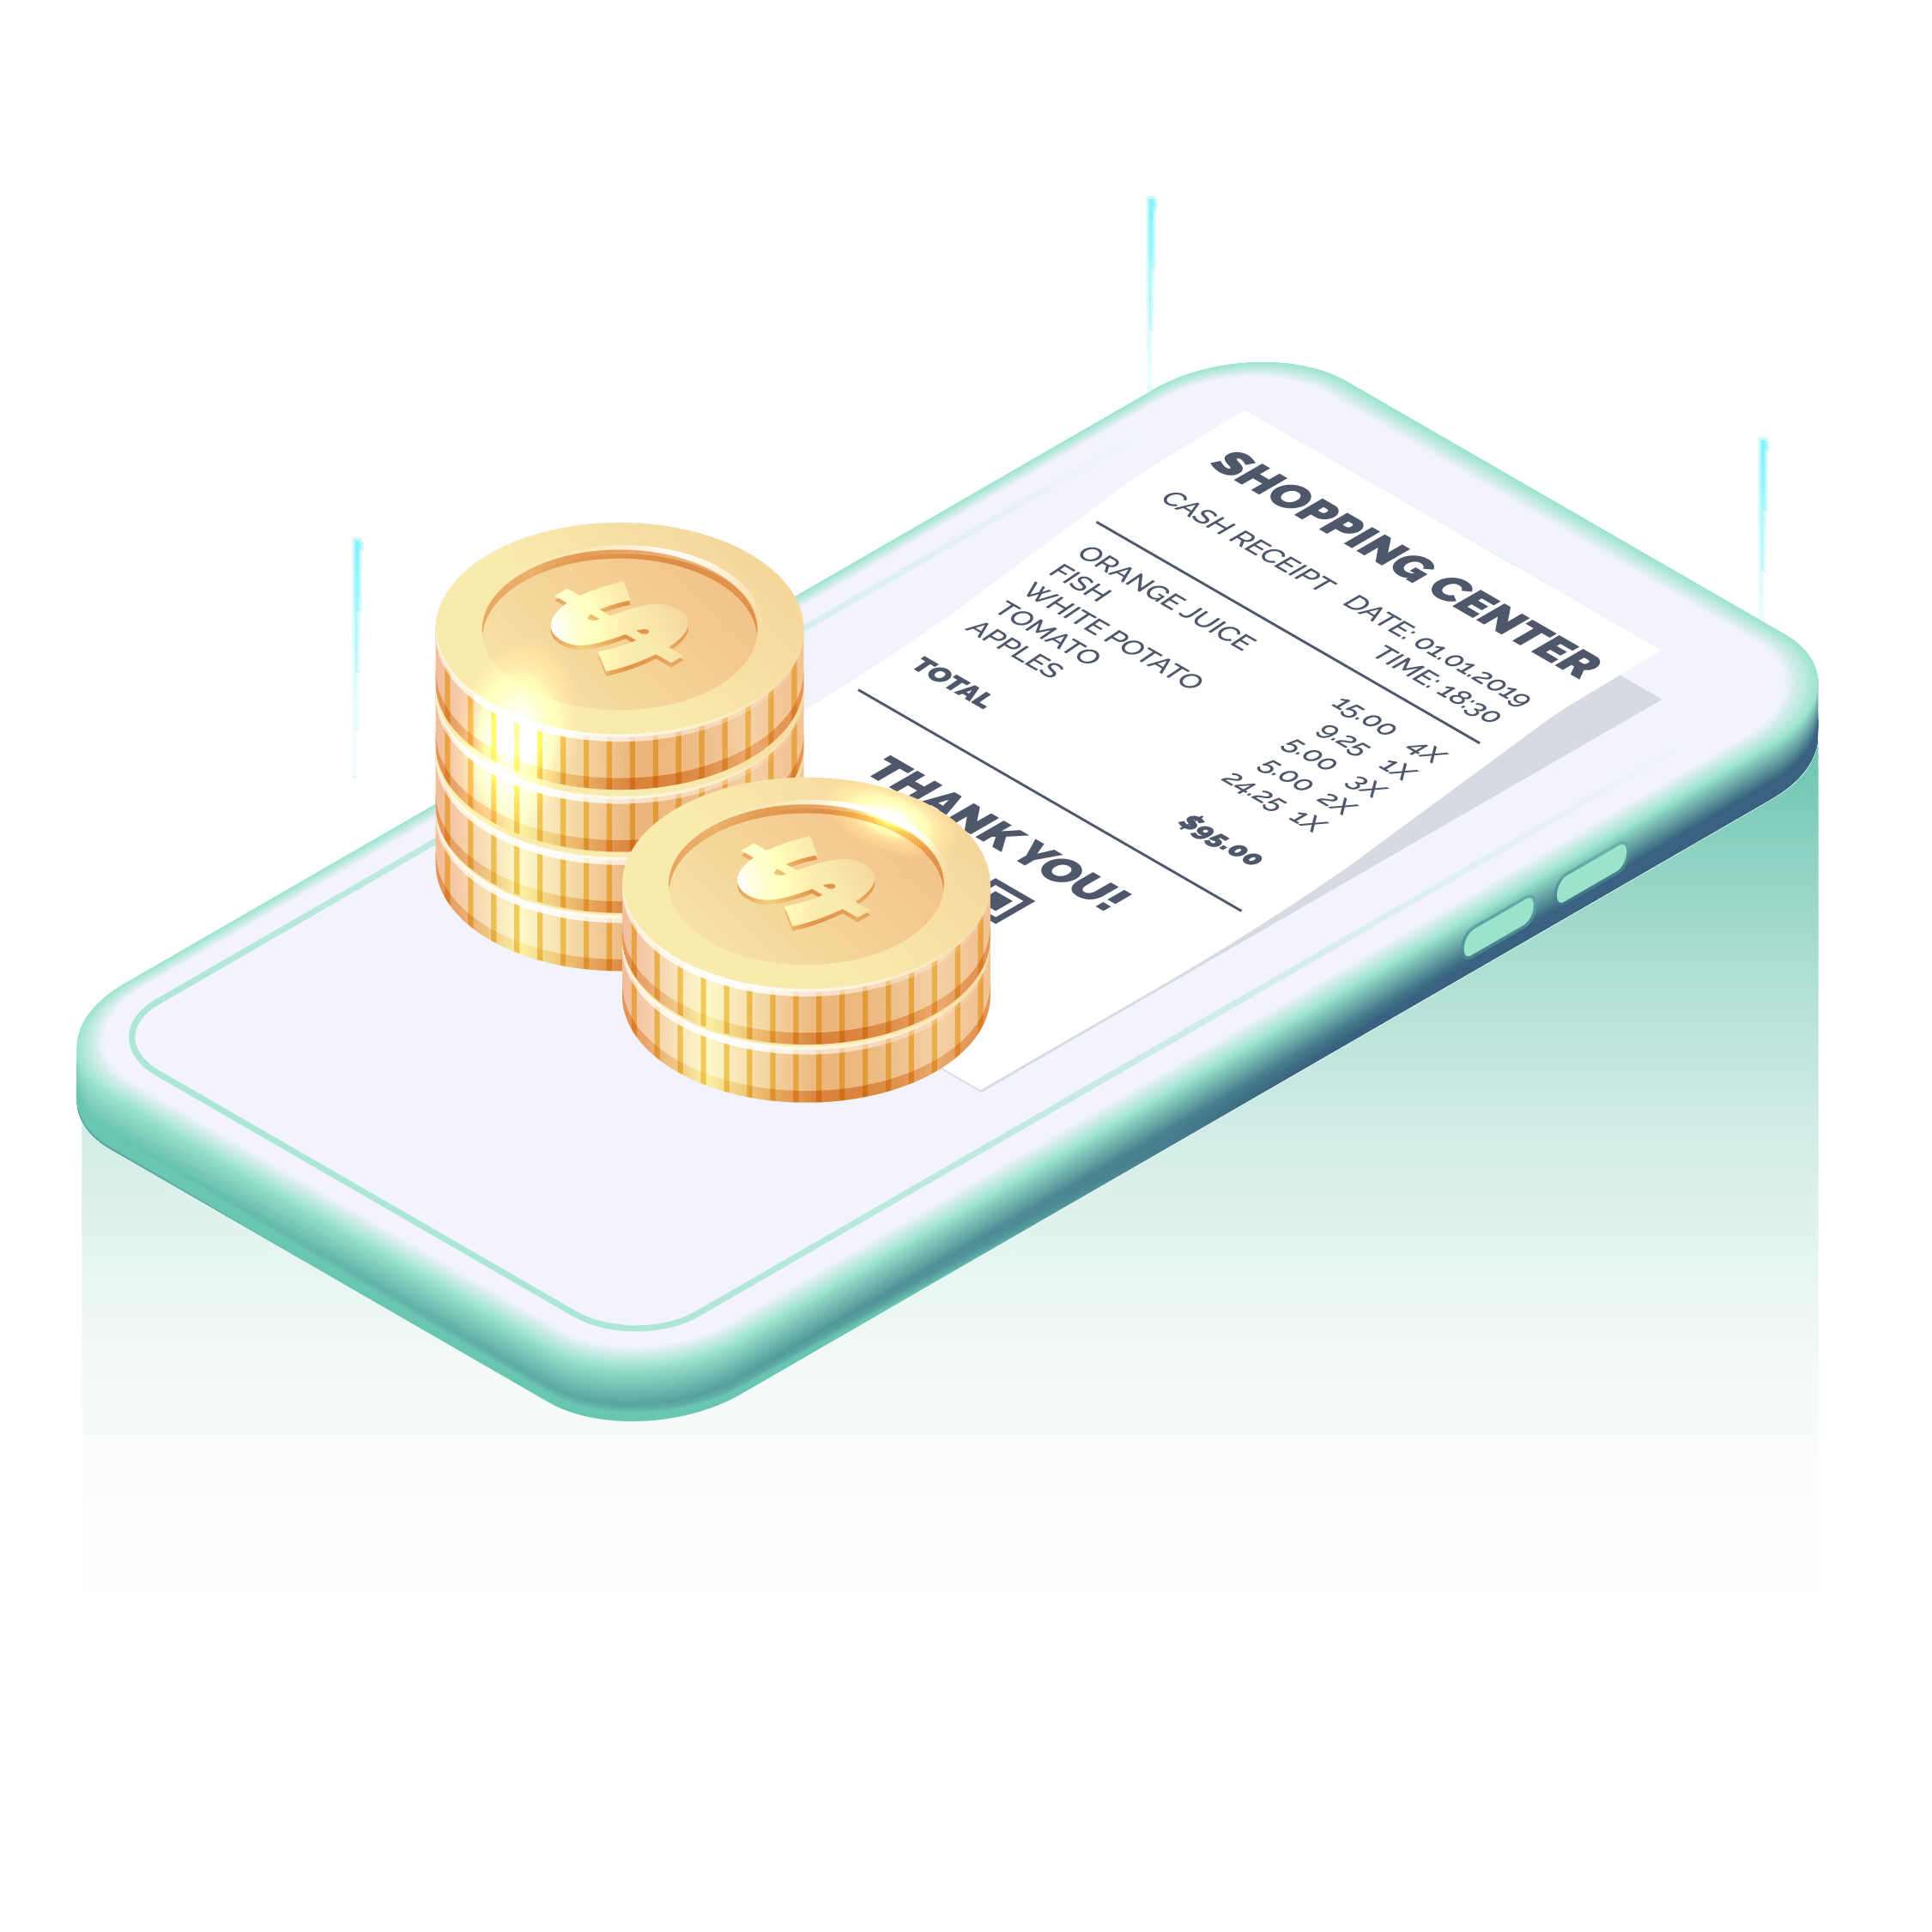 TG Pay - Payment initiation